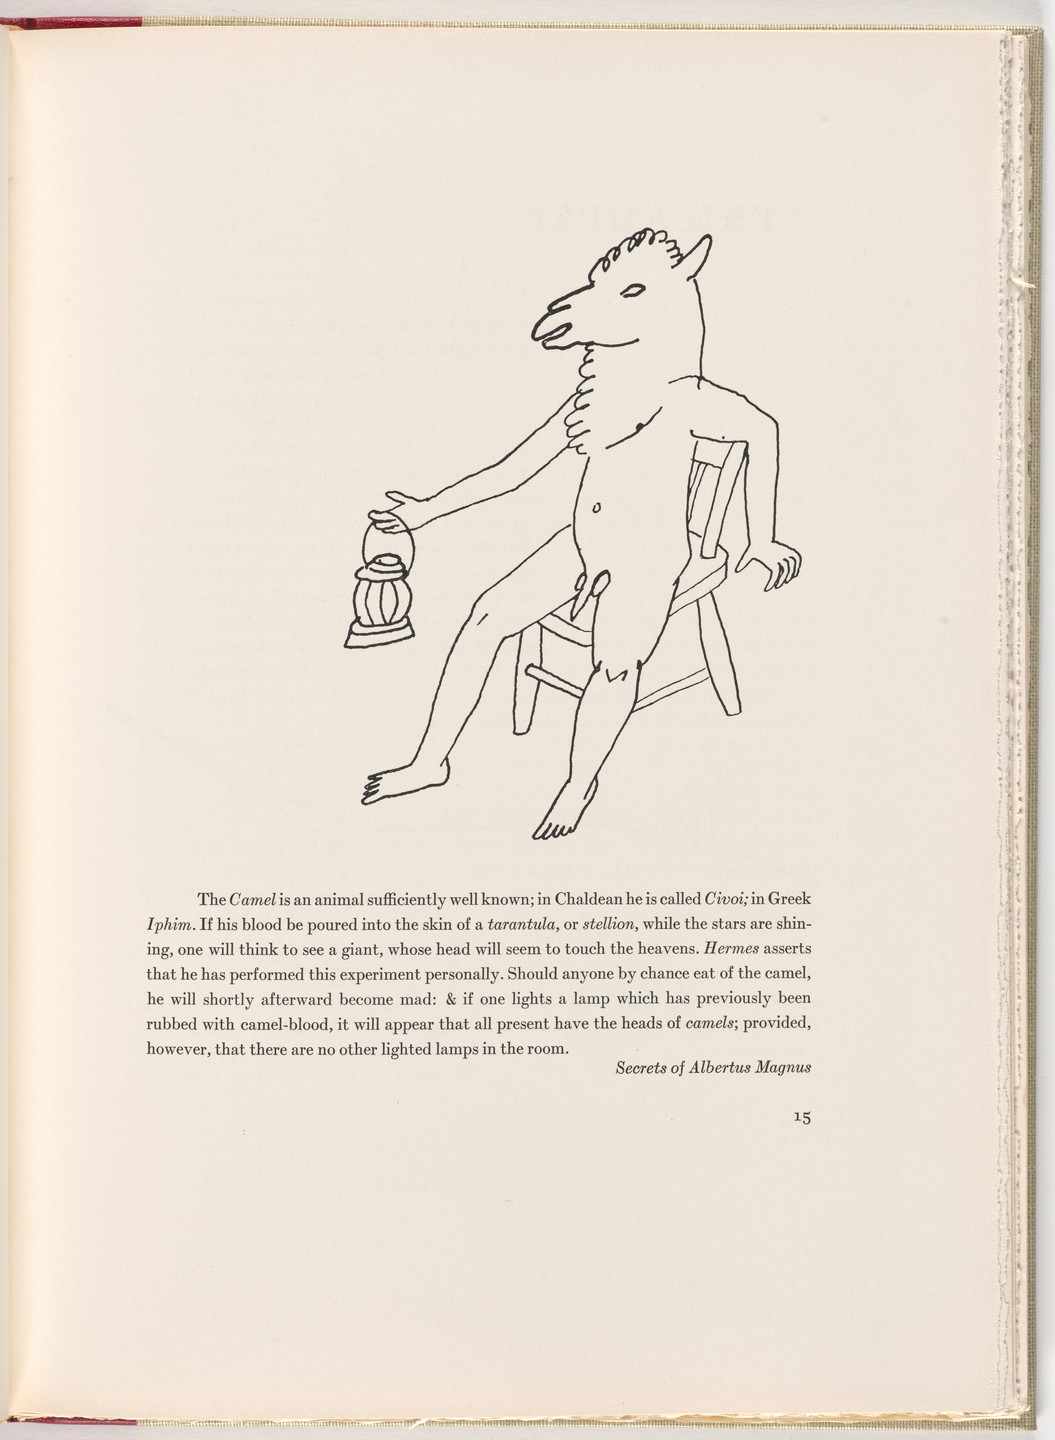 Alexander Calder. In-text plate (page 15) from A Bestiary. 1955